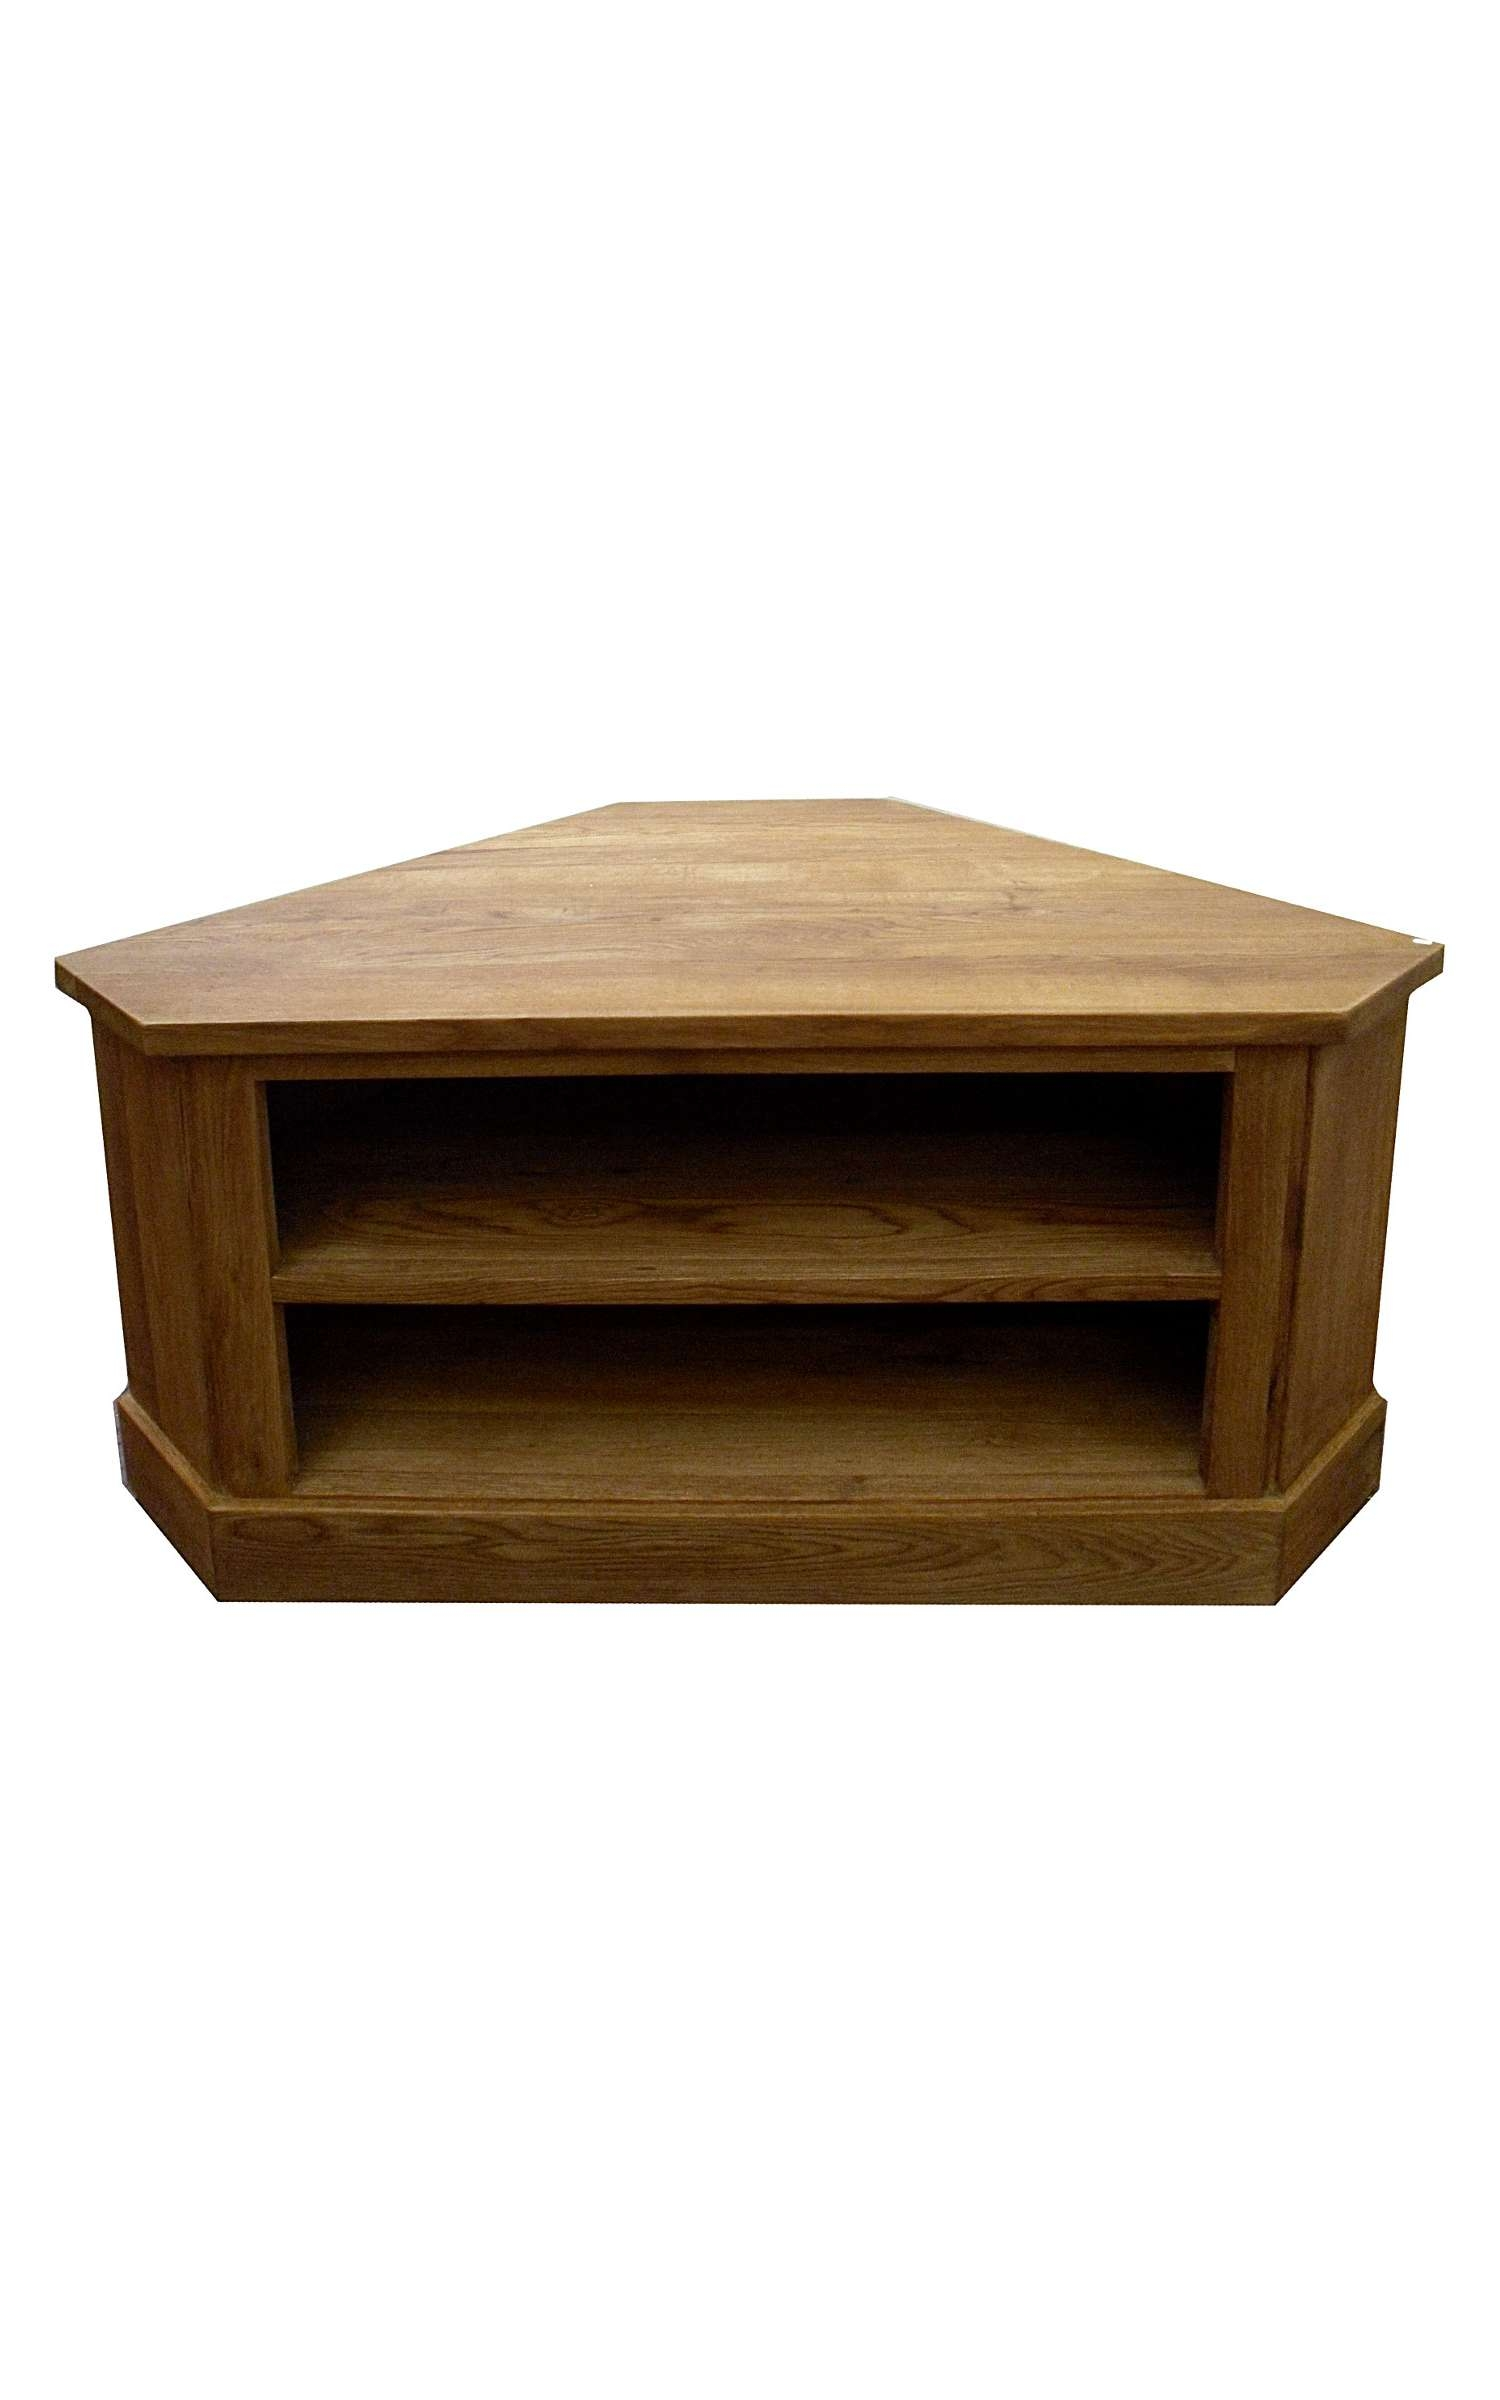 Small Wooden Corner Tv Stand Console Cabinet With Fireplace And Inside Wooden Corner Tv Stands (View 6 of 20)